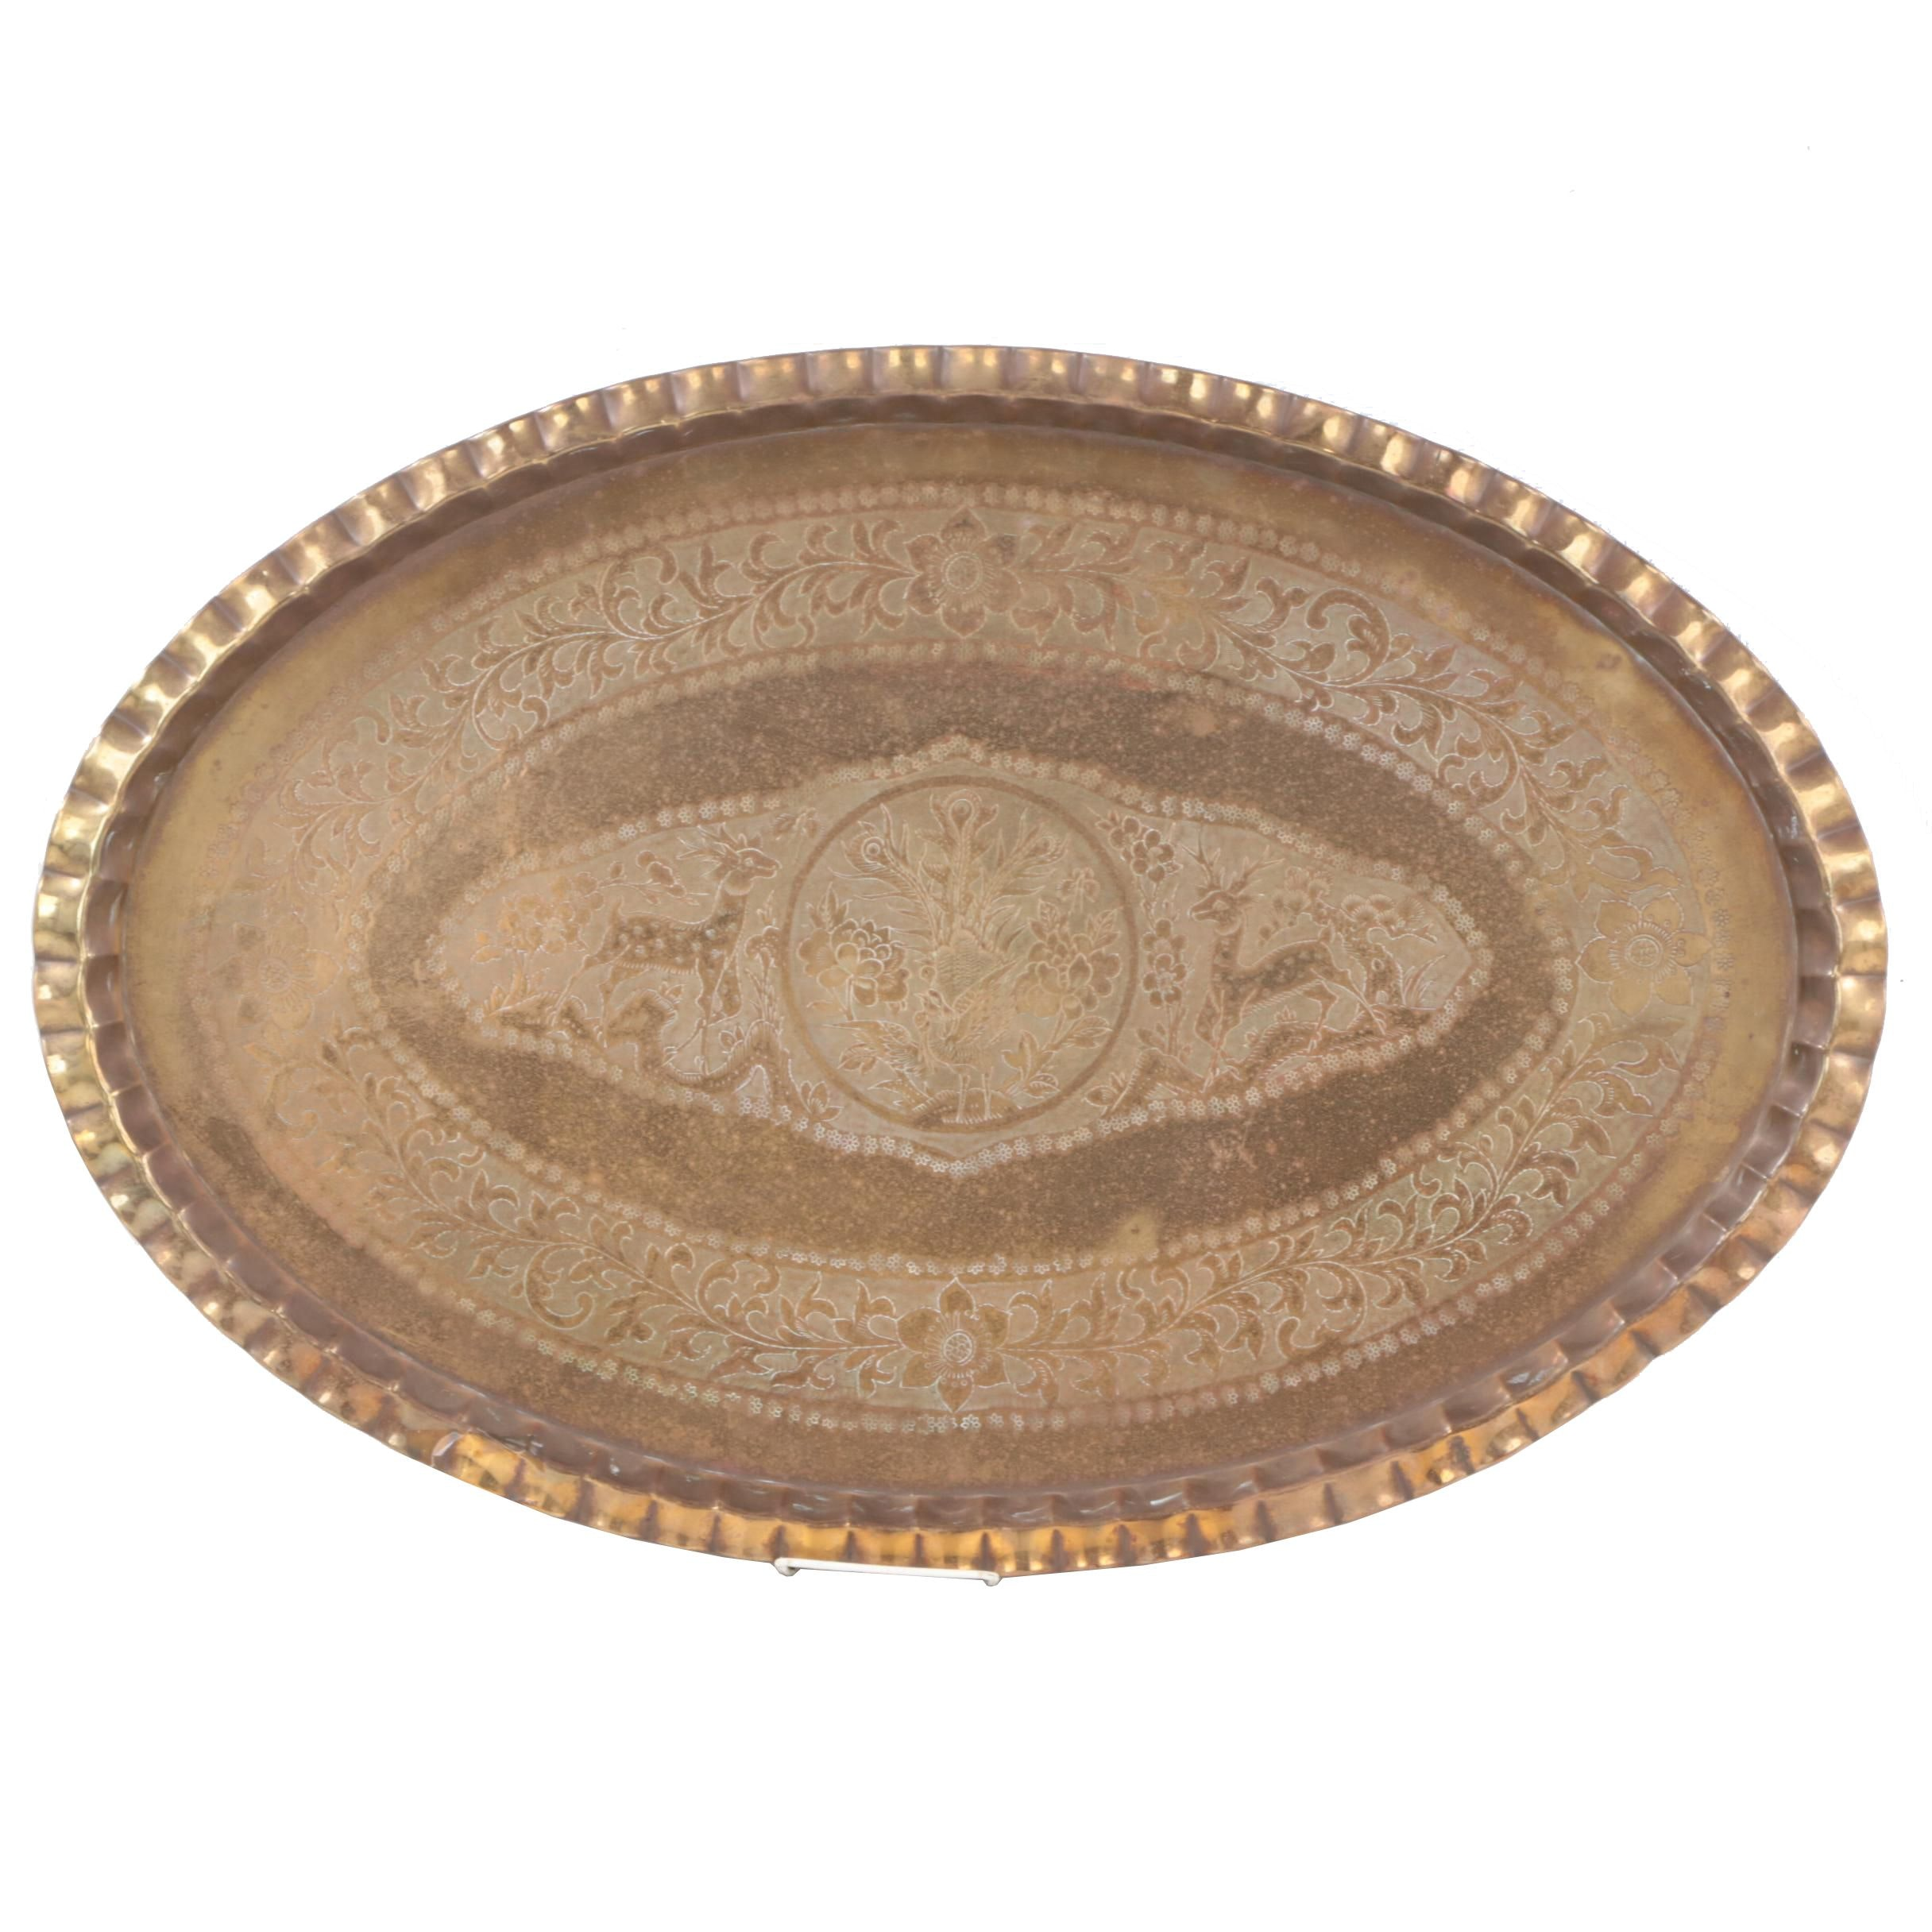 Chinese Etched Brass Tray with Flora and Fauna Motif